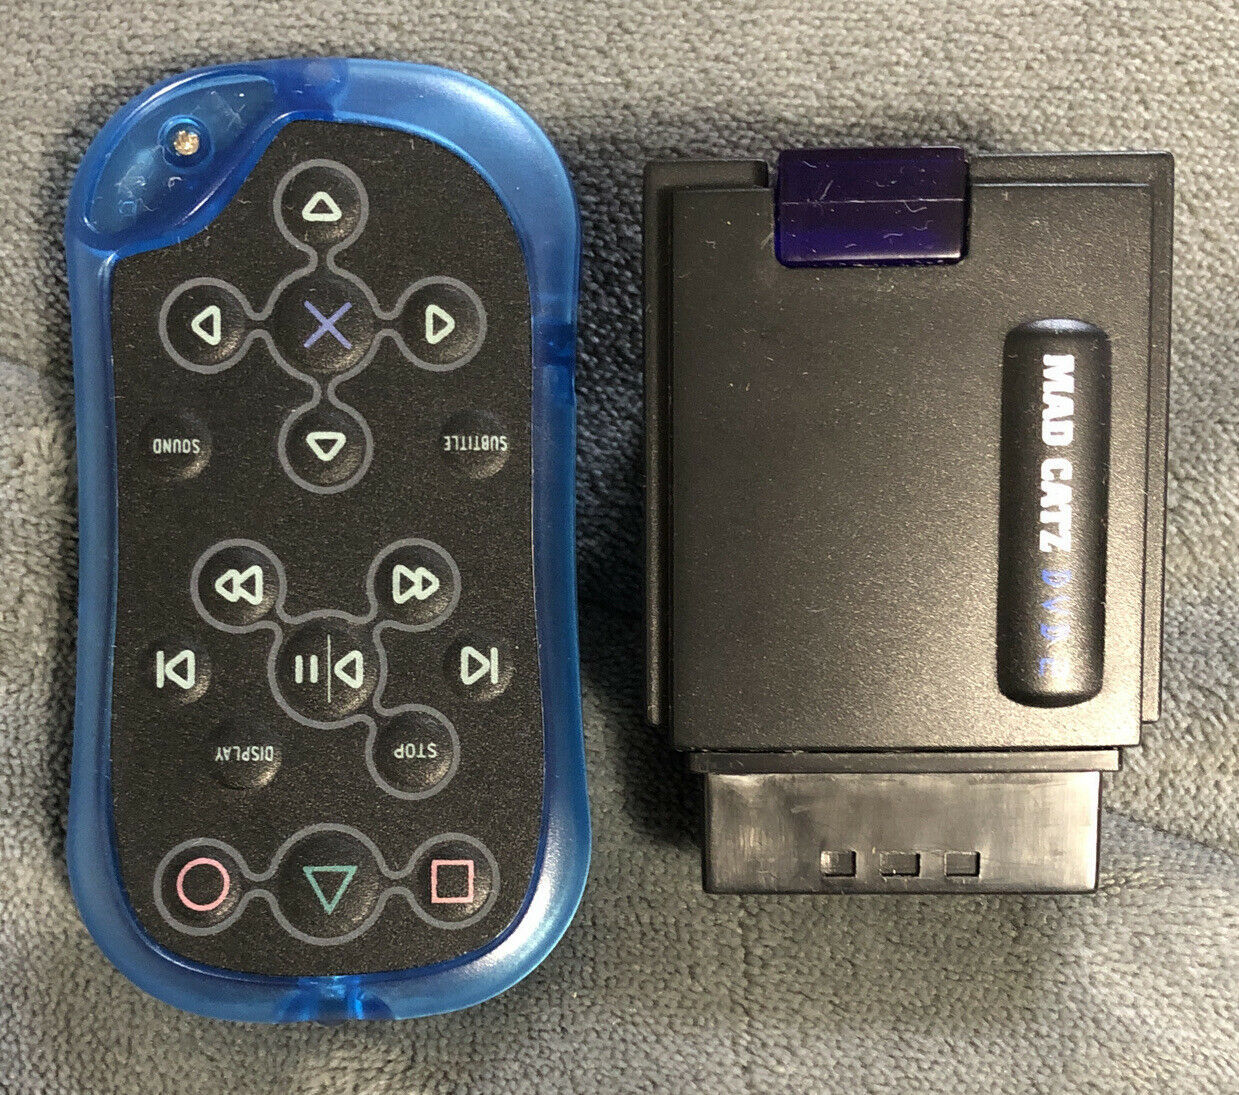 Primary image for PS2 Mad Catz DVD 2 Remote and Receiver Dongle - PlayStation 2